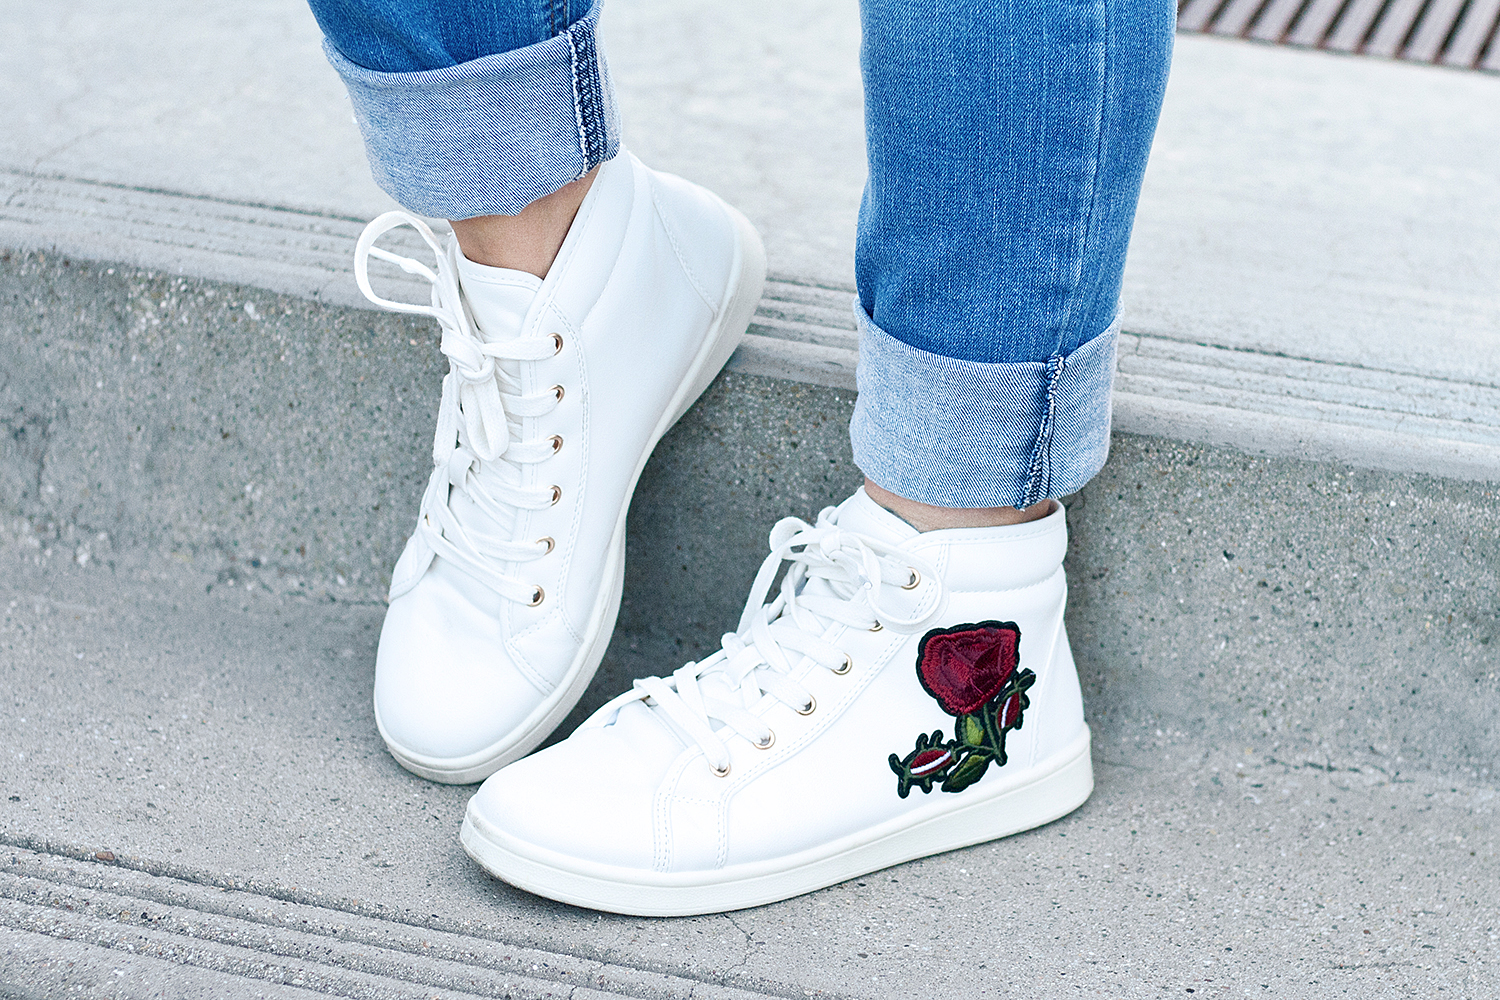 09denim-floral-embroidery-sneakers-fashion-style